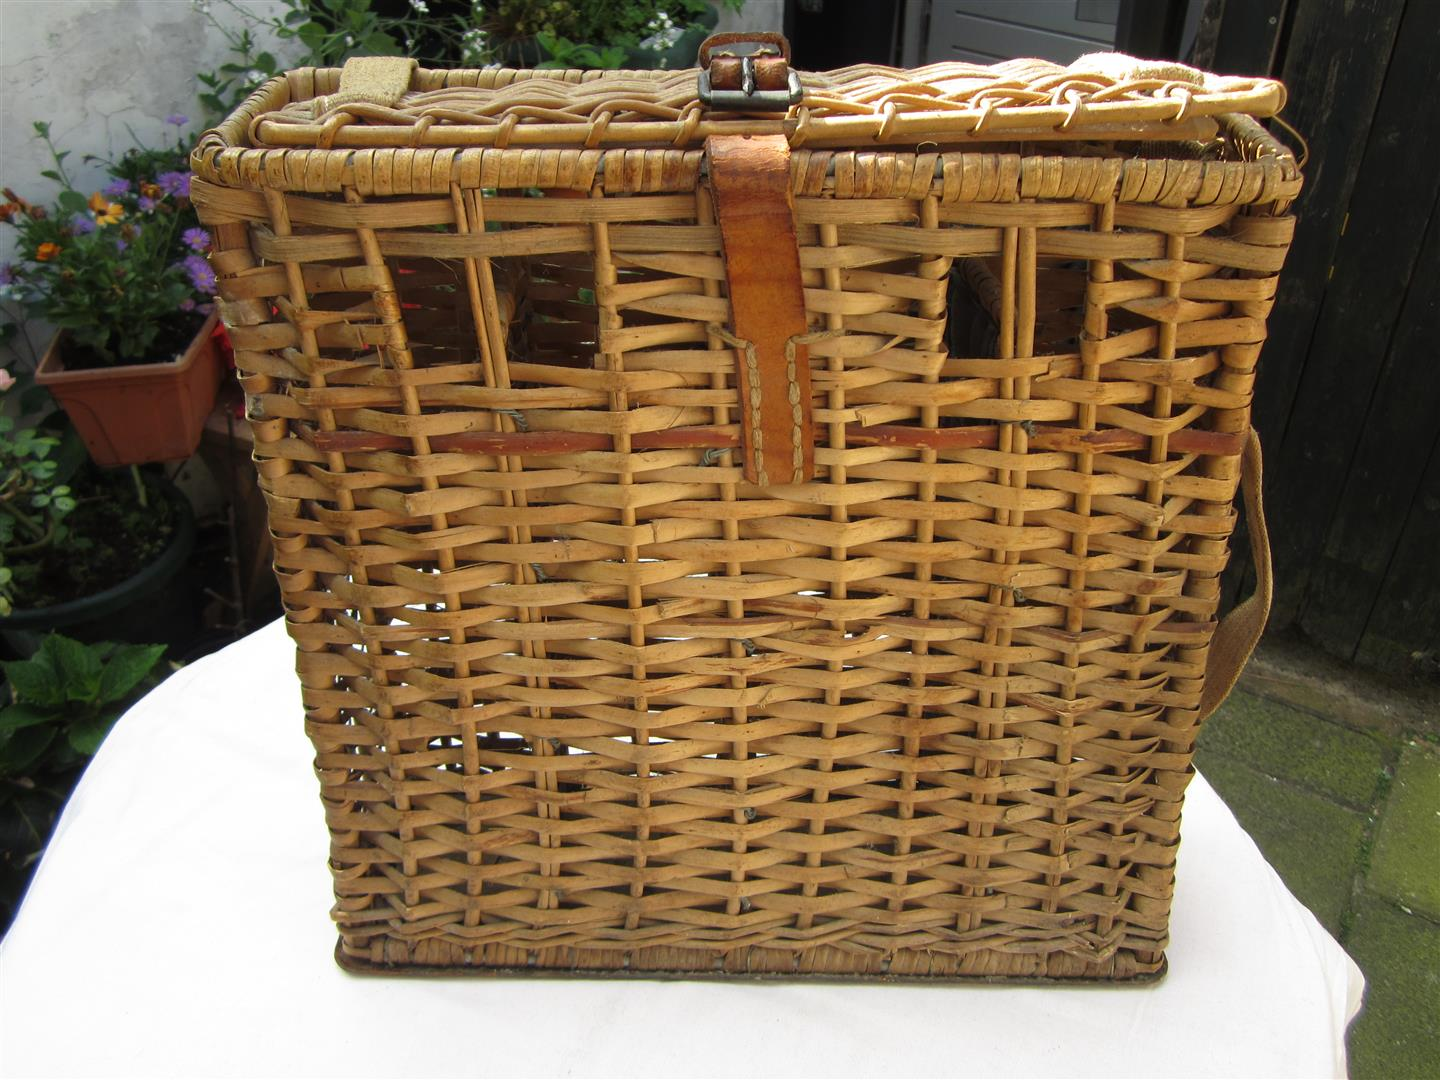 WW2 German 7.5cm PAK Shell Case Basket